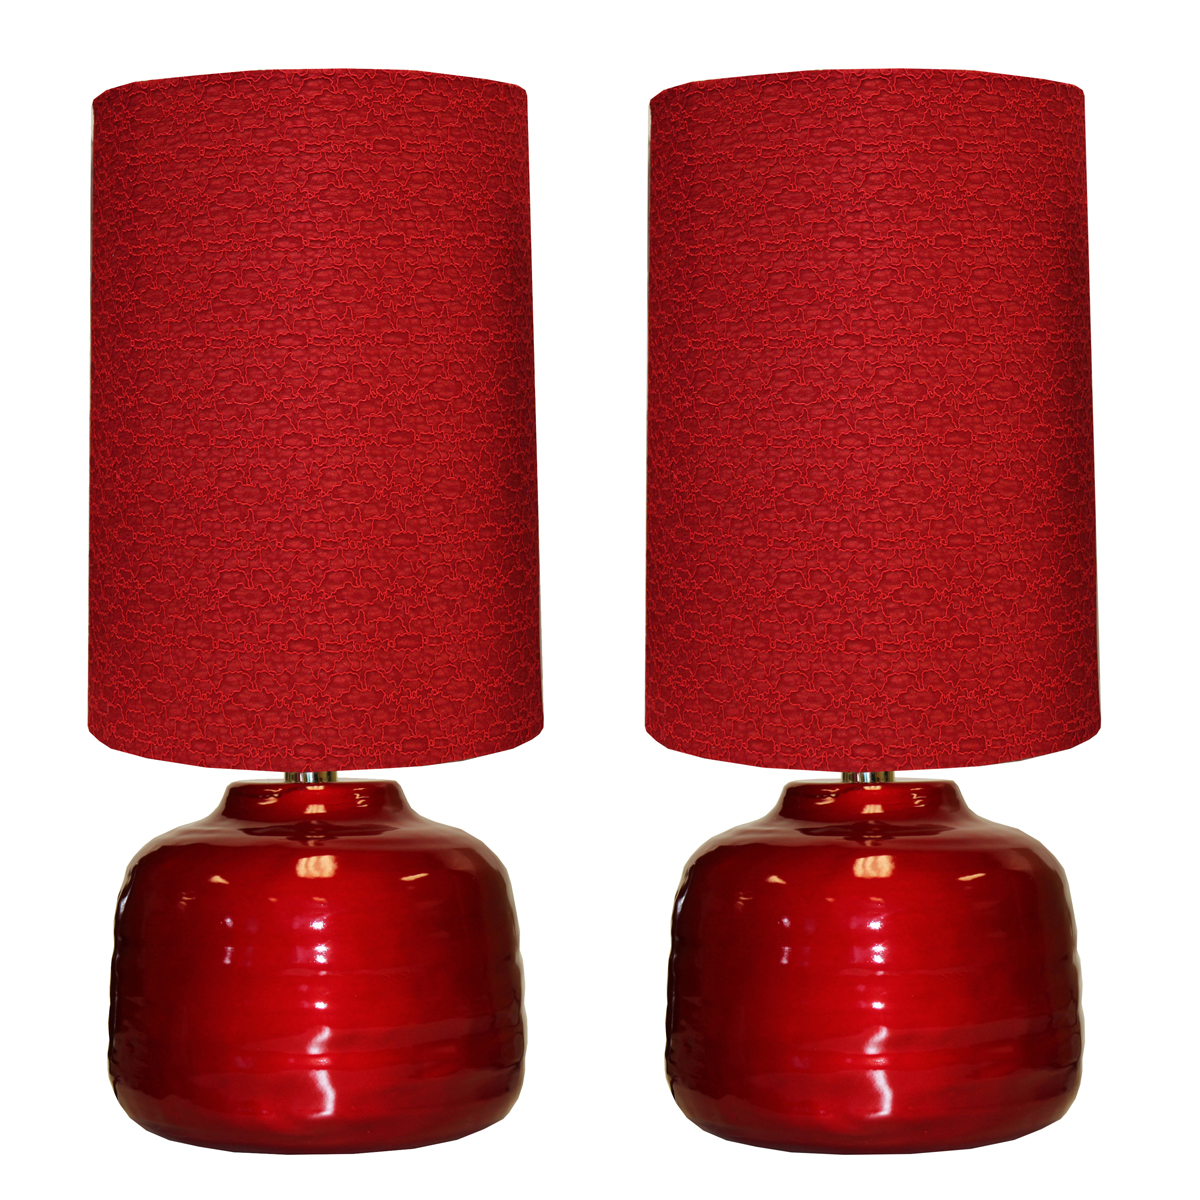 Urban Designs Candy Apple Red 23-inch Ceramic Table Lamp - Set of 2